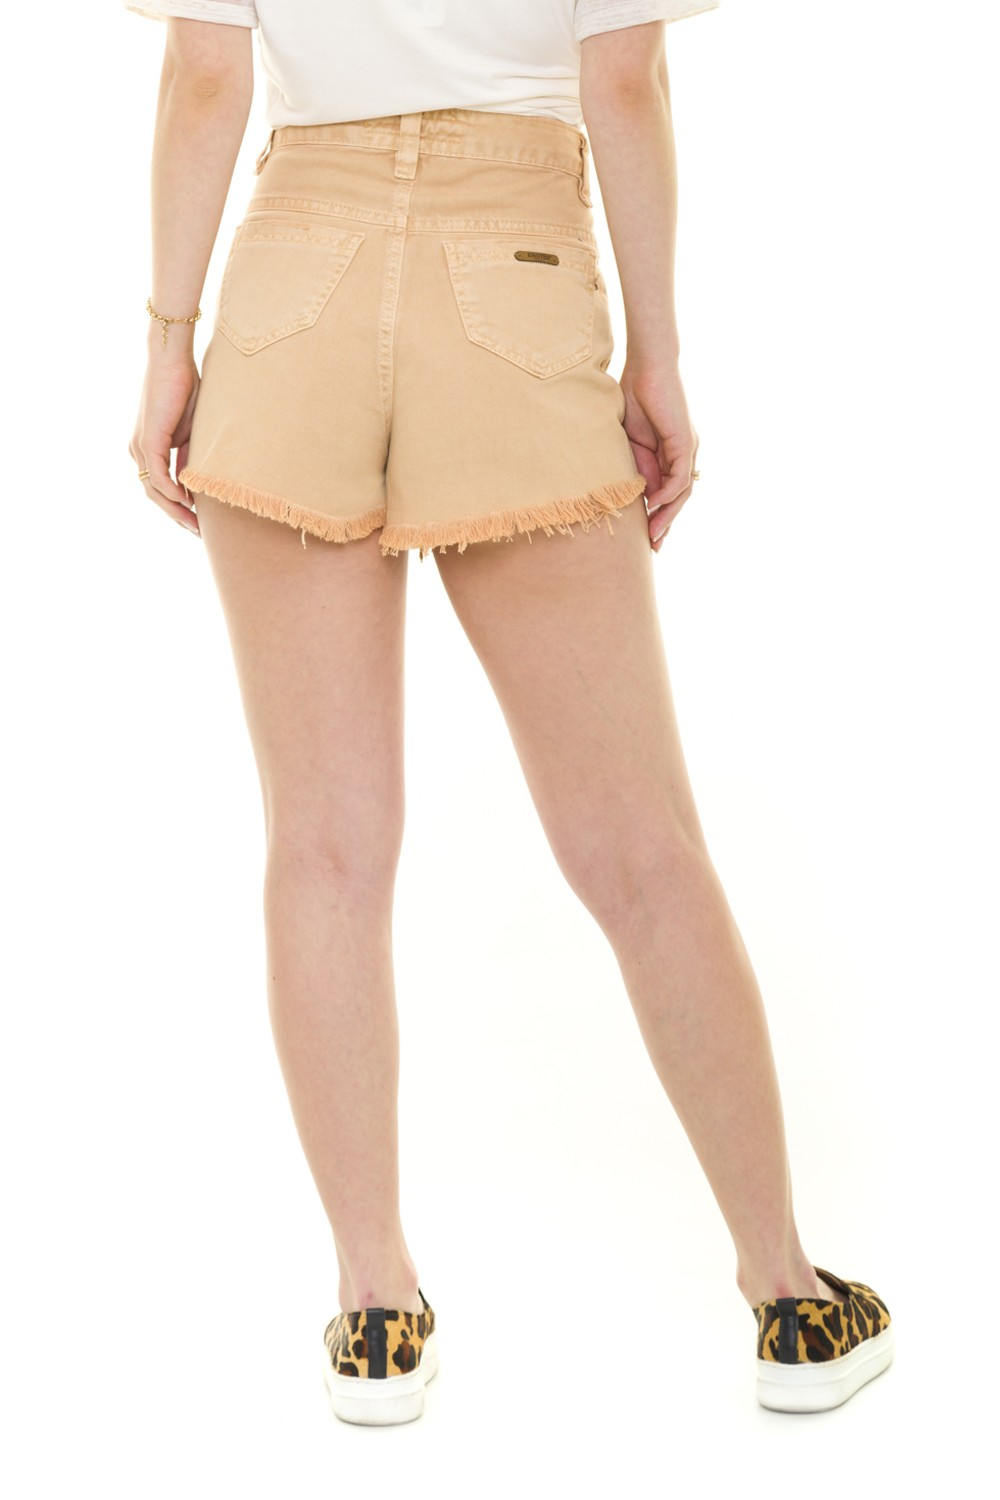 SHORTS SARJA HOT PANTS